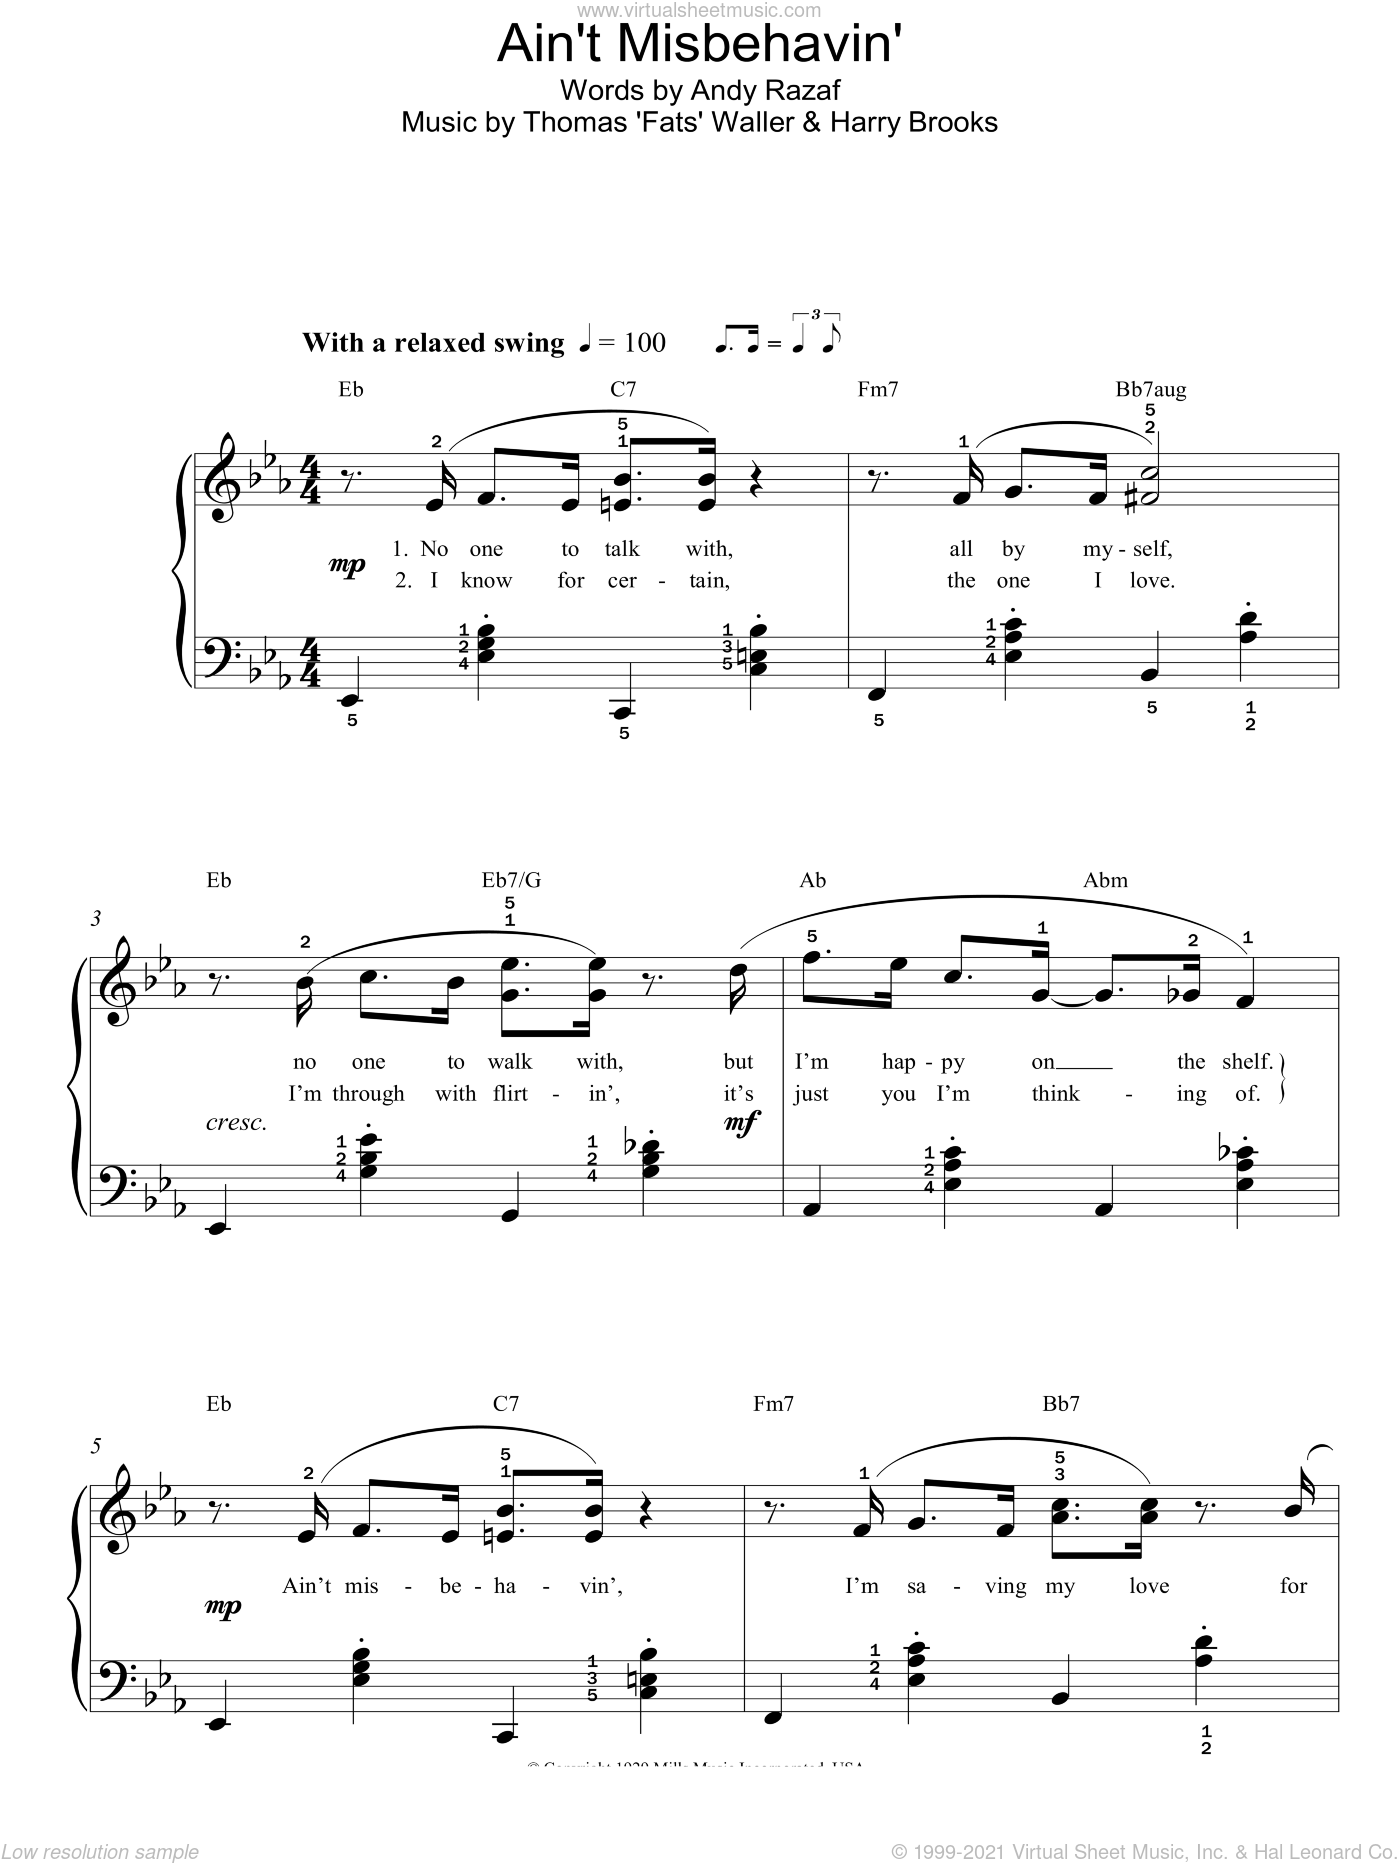 Ain't Misbehavin' sheet music for piano solo (chords) by Harry Brooks